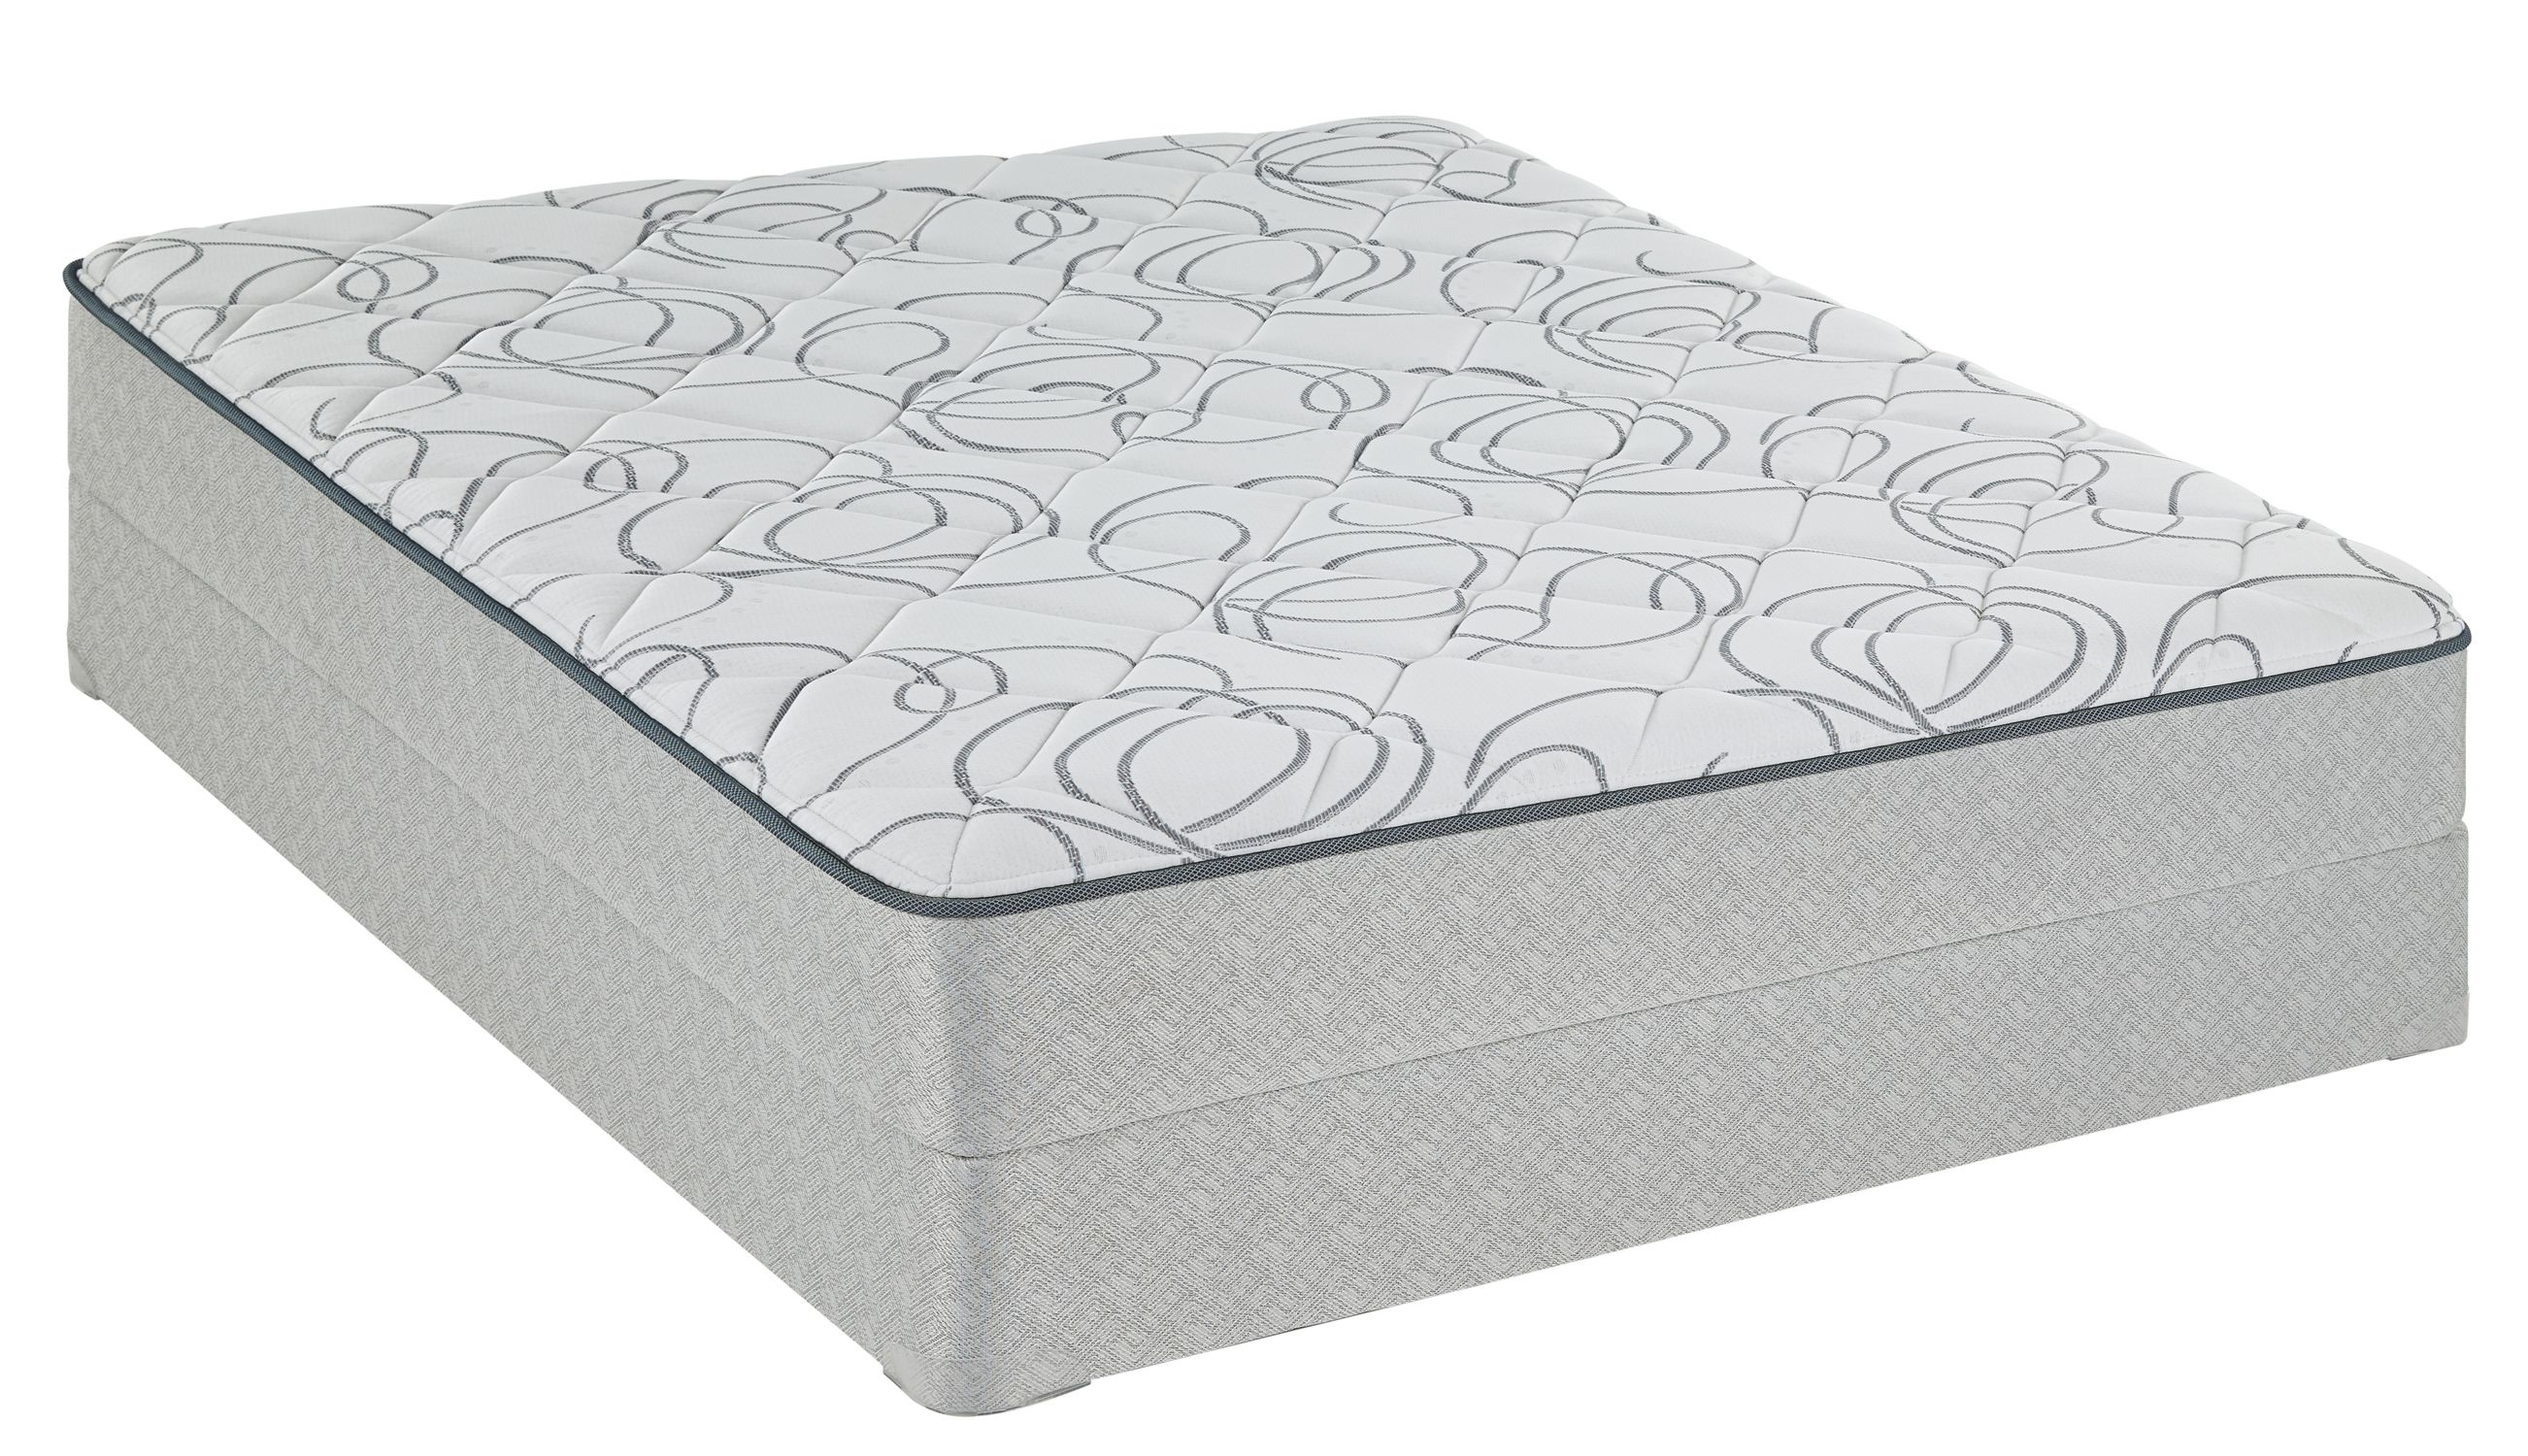 Colchones Tempur Outlet.Sealy Belcarro Firm Queen Mattress Only Food King Size Mattress